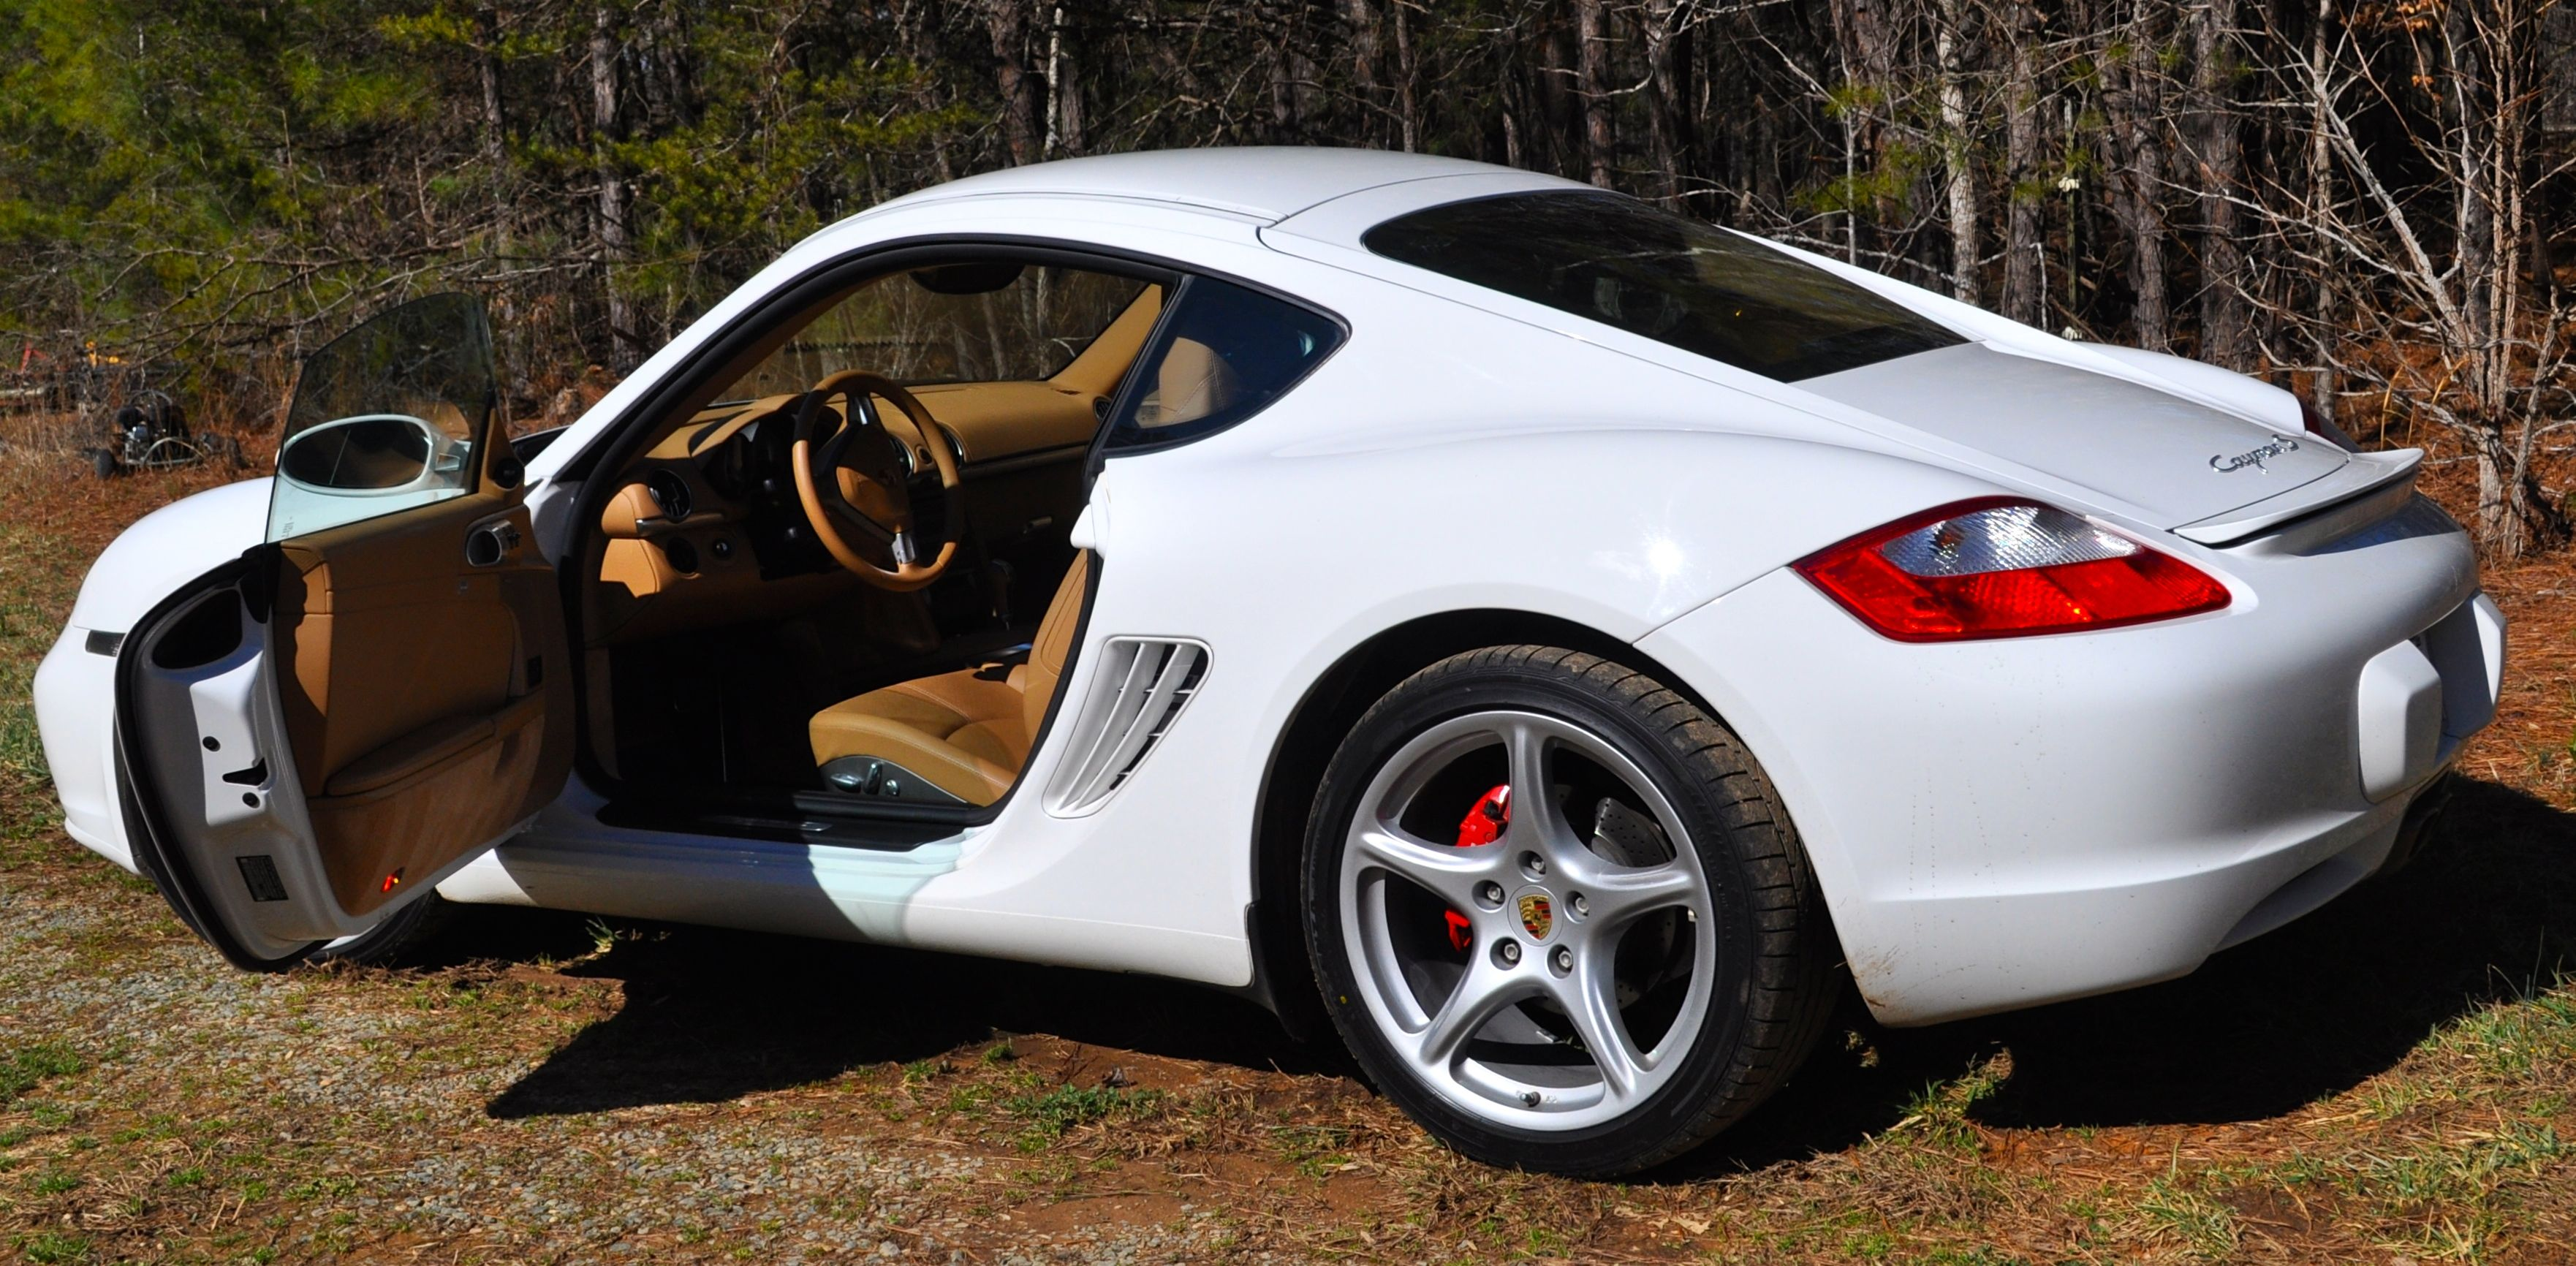 2007 cayman s with tan interior who likes tan dsc_0005 jpg